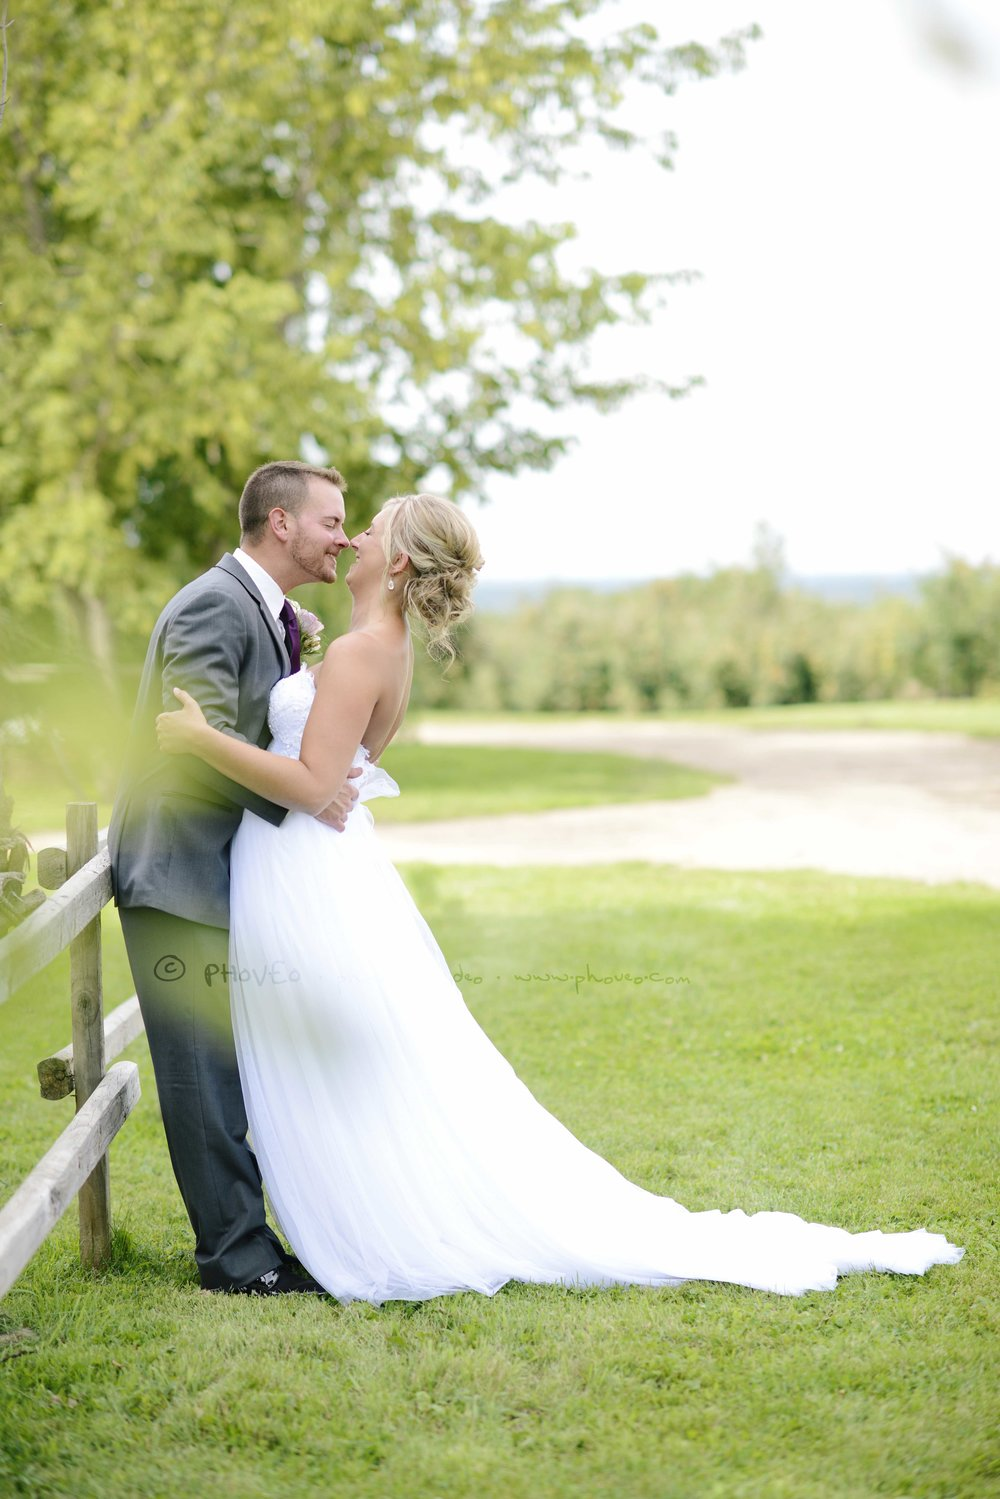 WM_20160826_Katelyn+Tony_9.jpg